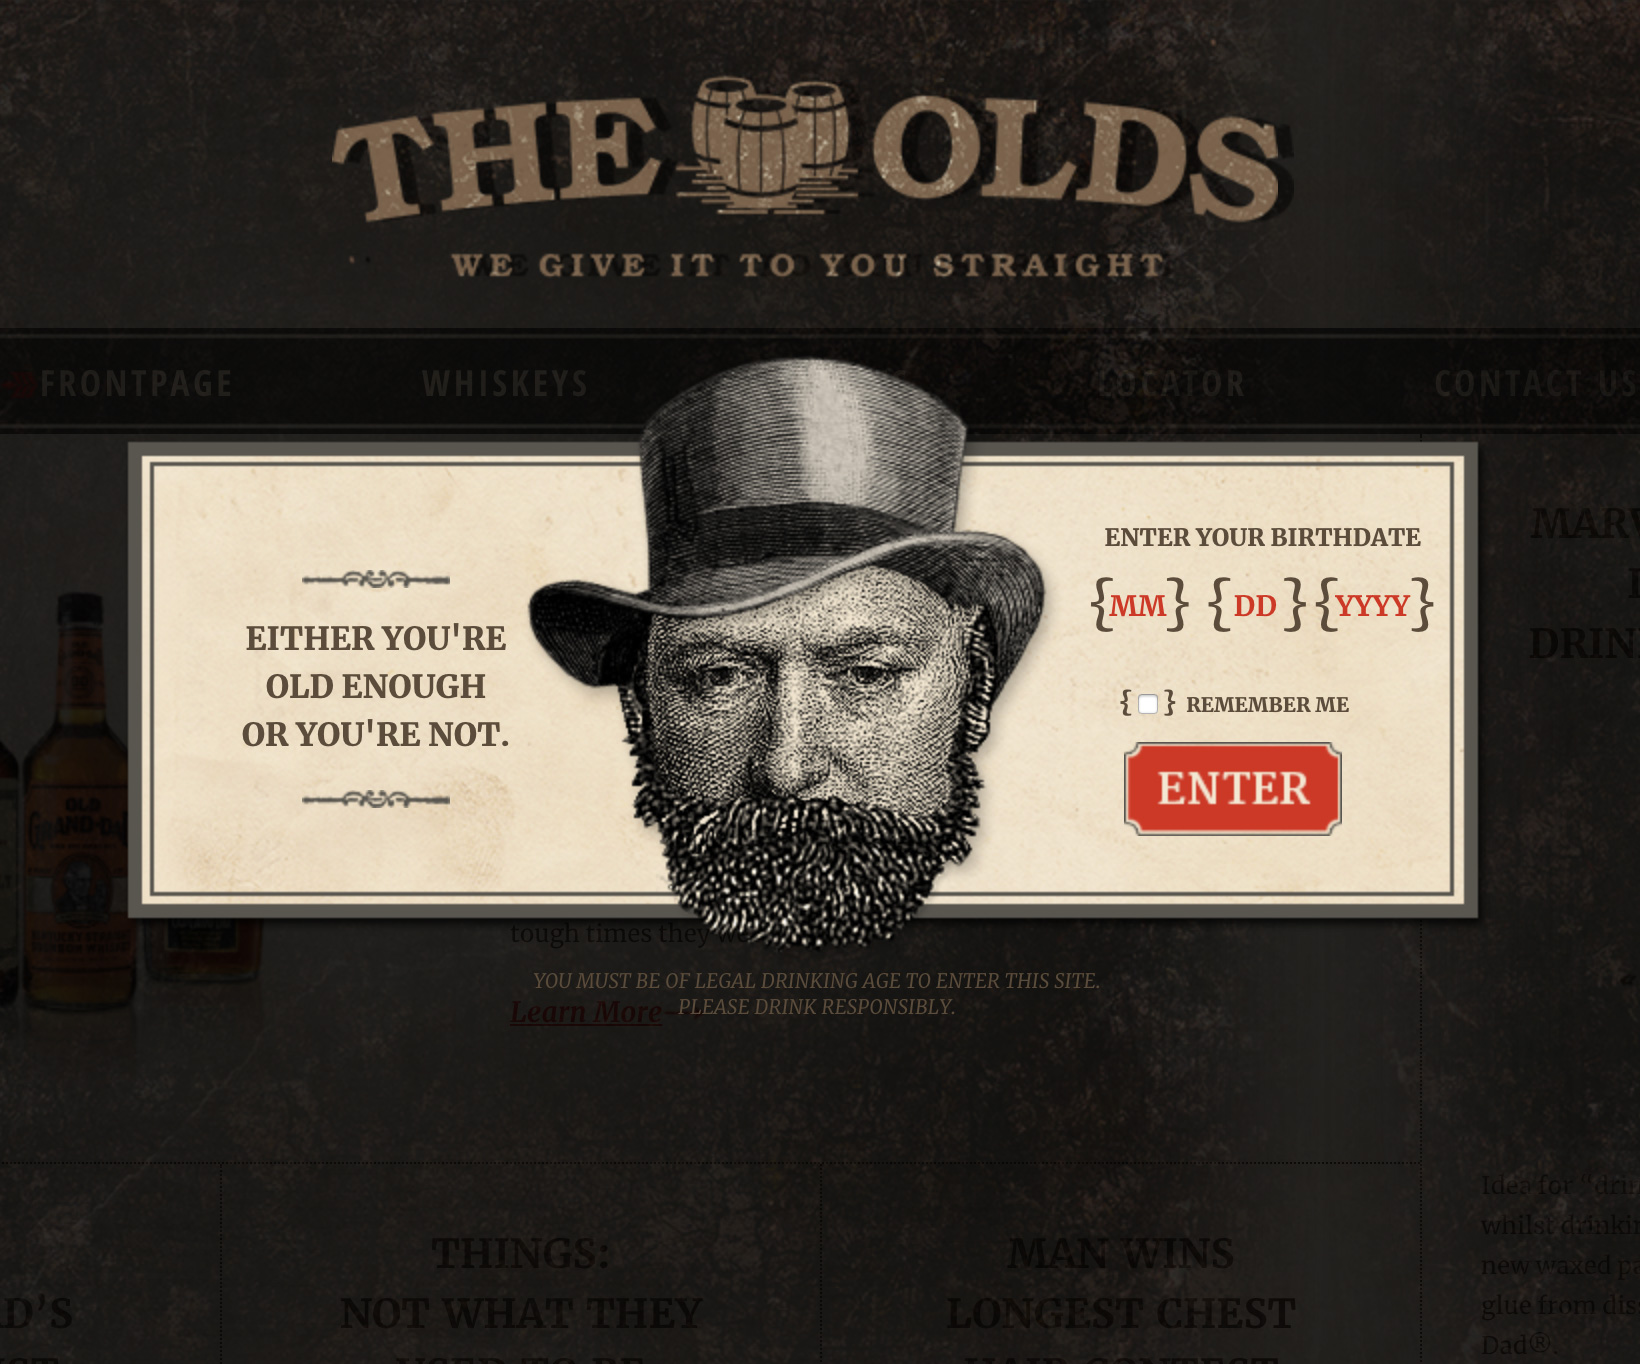 """The Olds"" Whiskey Website"